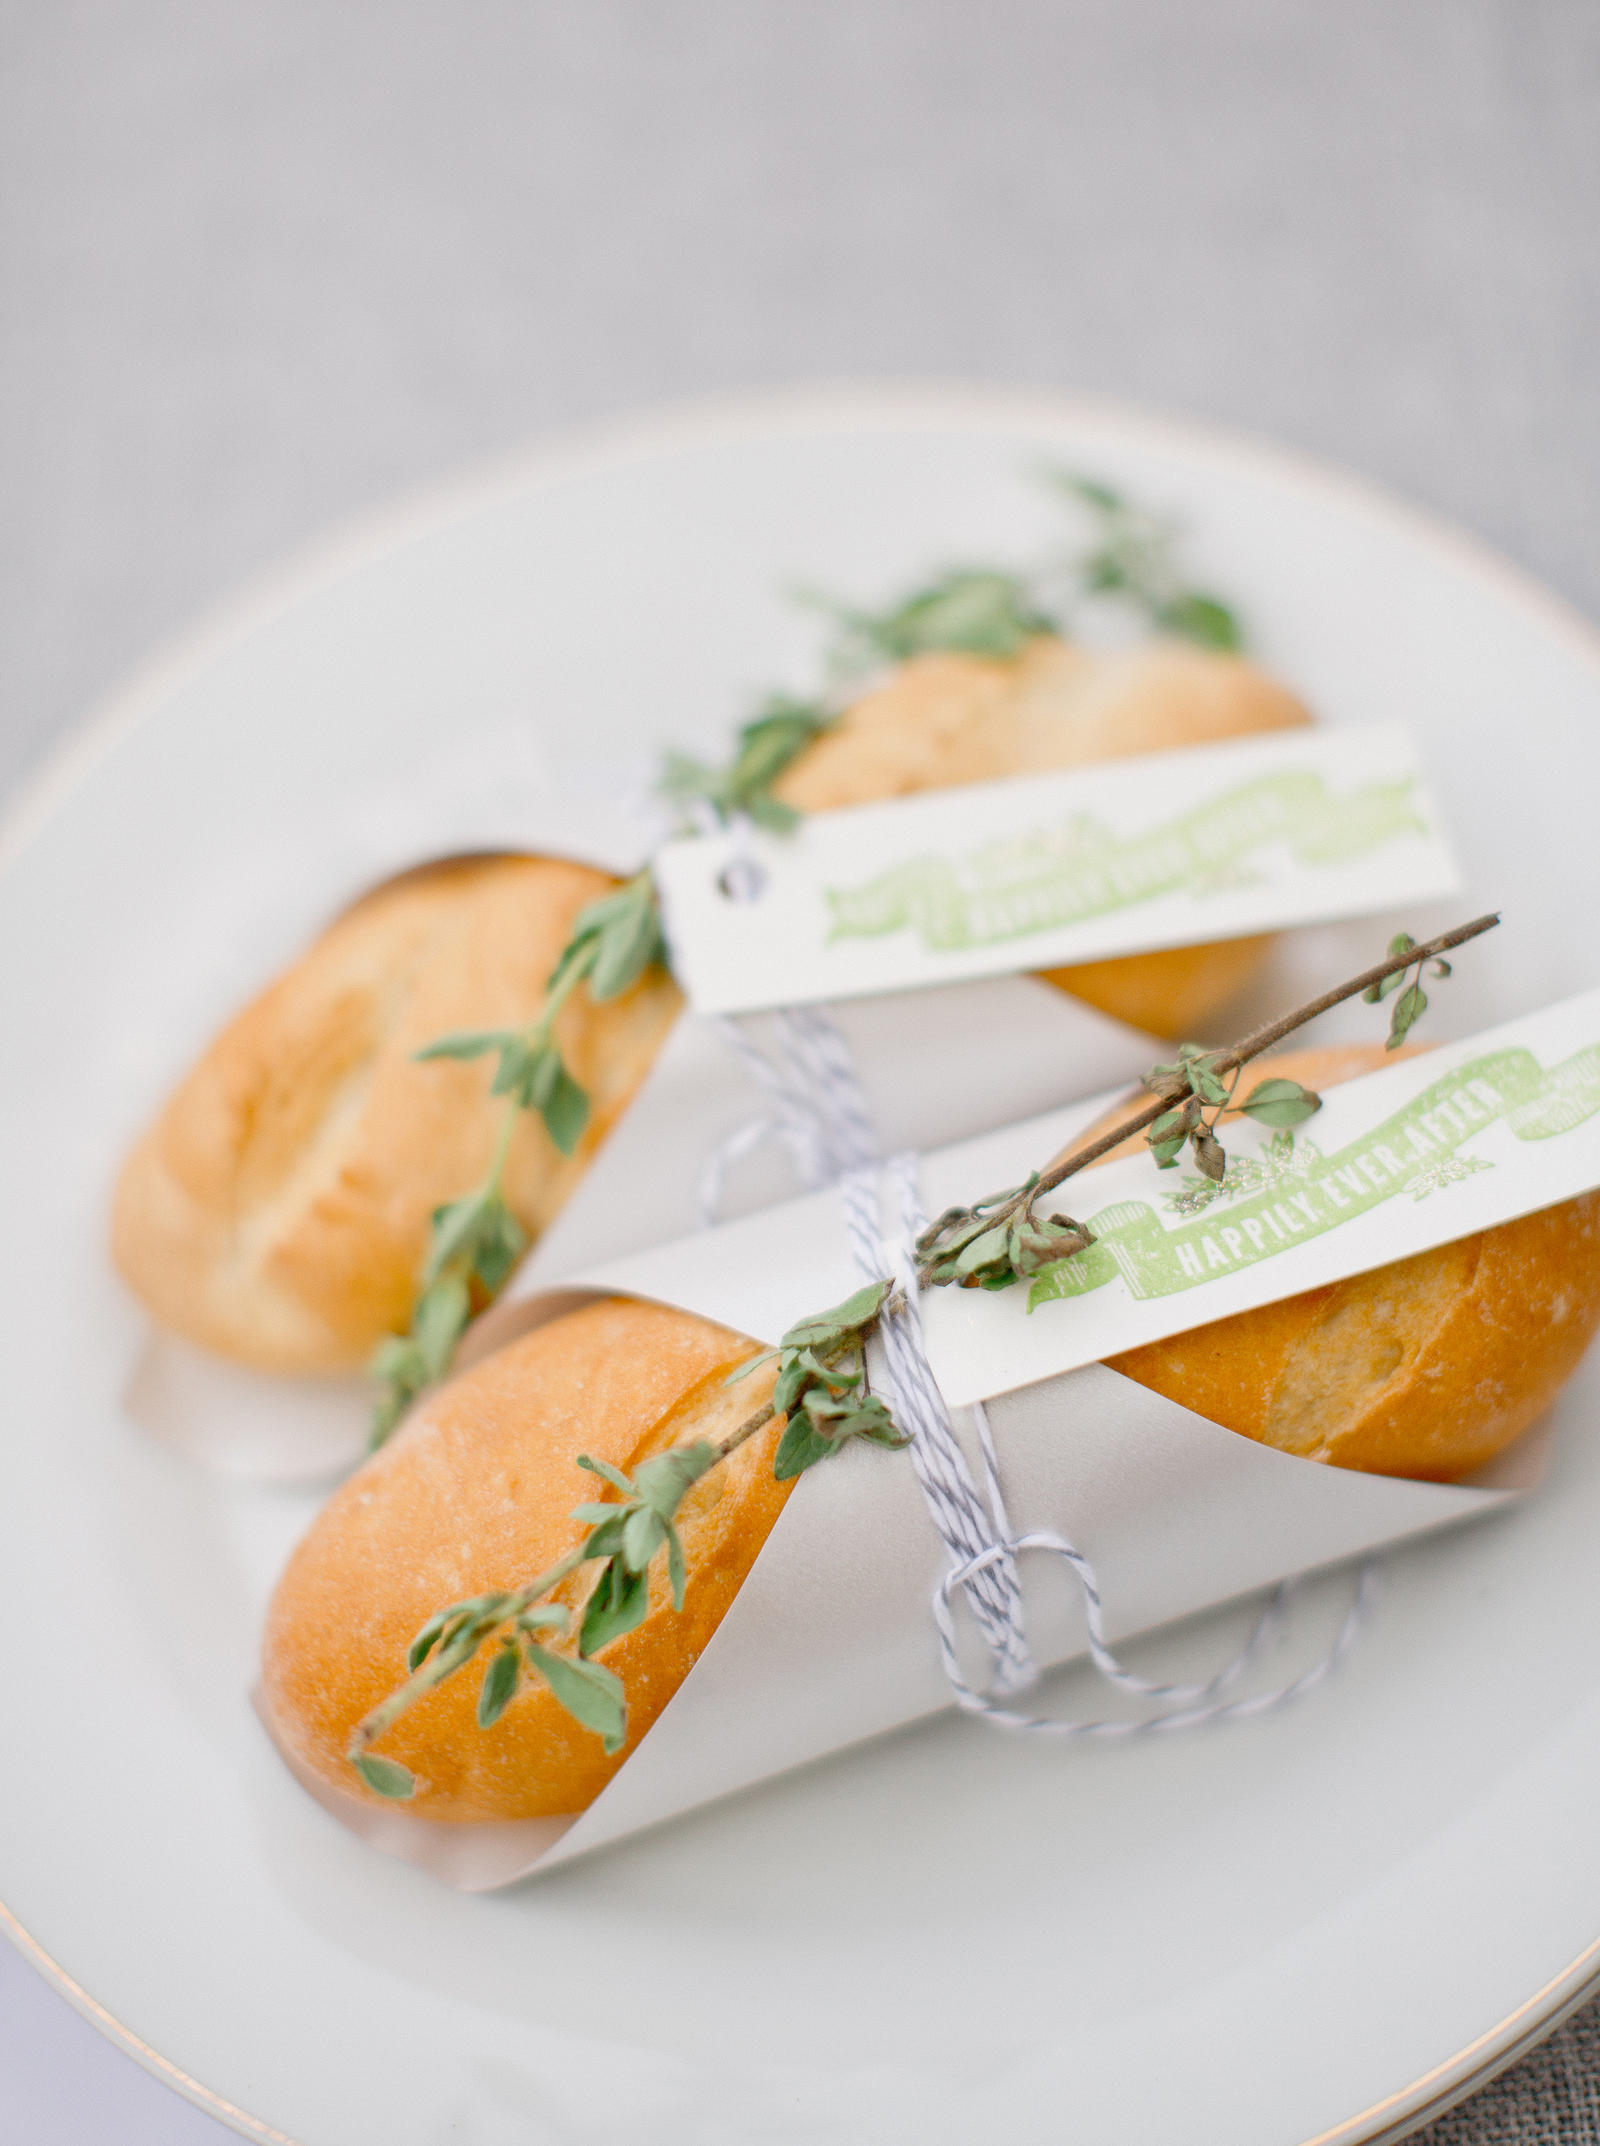 Wedding Photography | Small loaves of bread on a plate. A wedding message and herbs are tied to the bread.